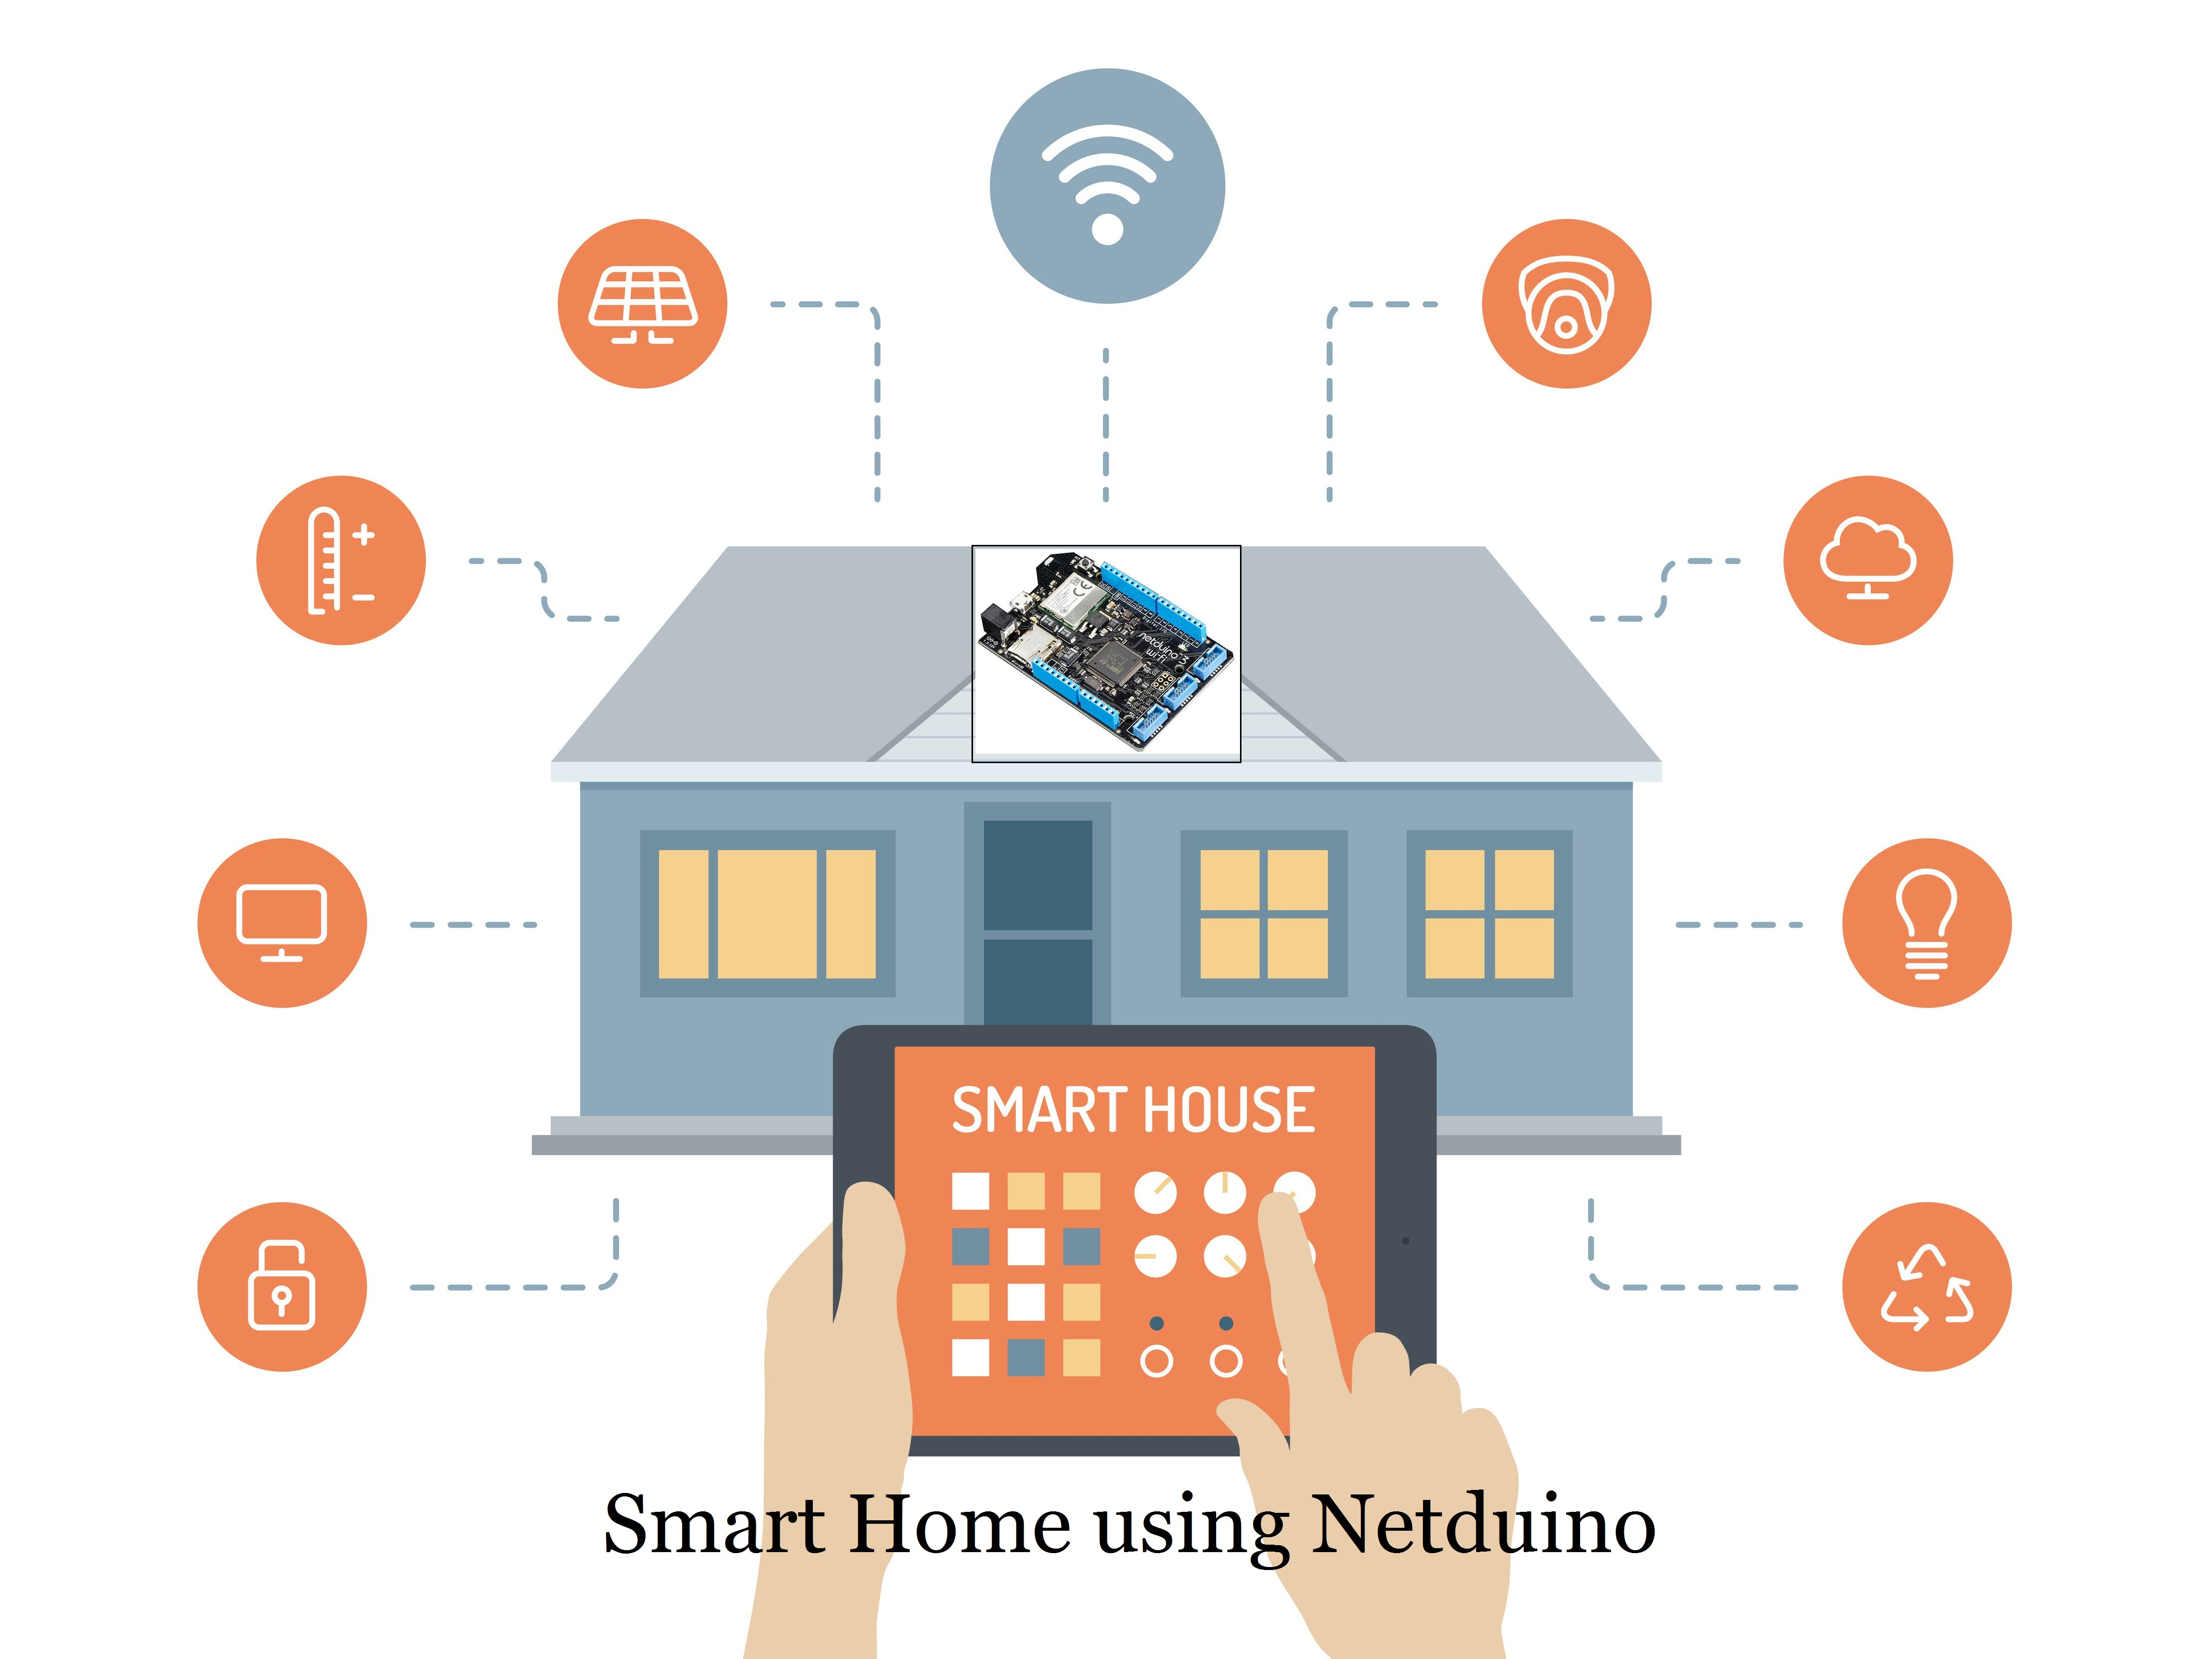 Smart Home Using Netduino